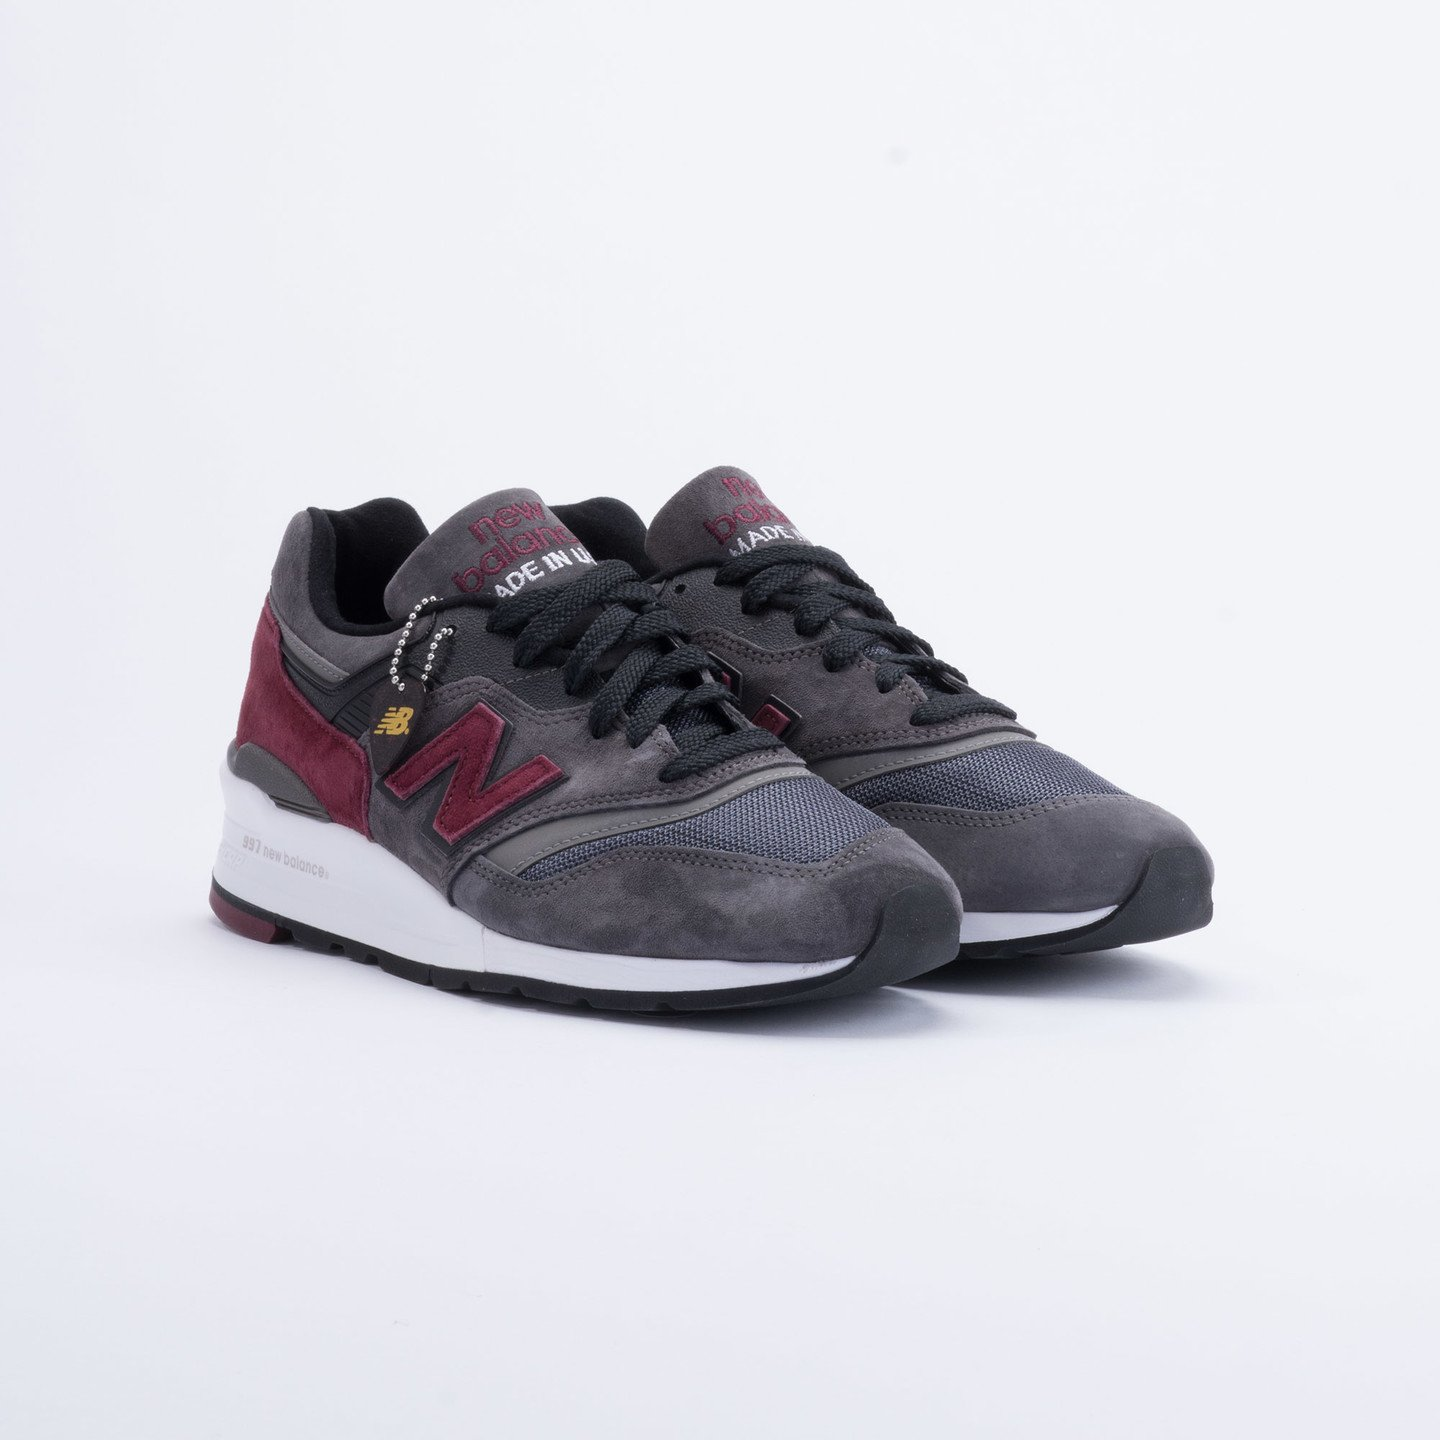 New Balance M997 Made in USA Charcoal/Burgundy M997CCF-42